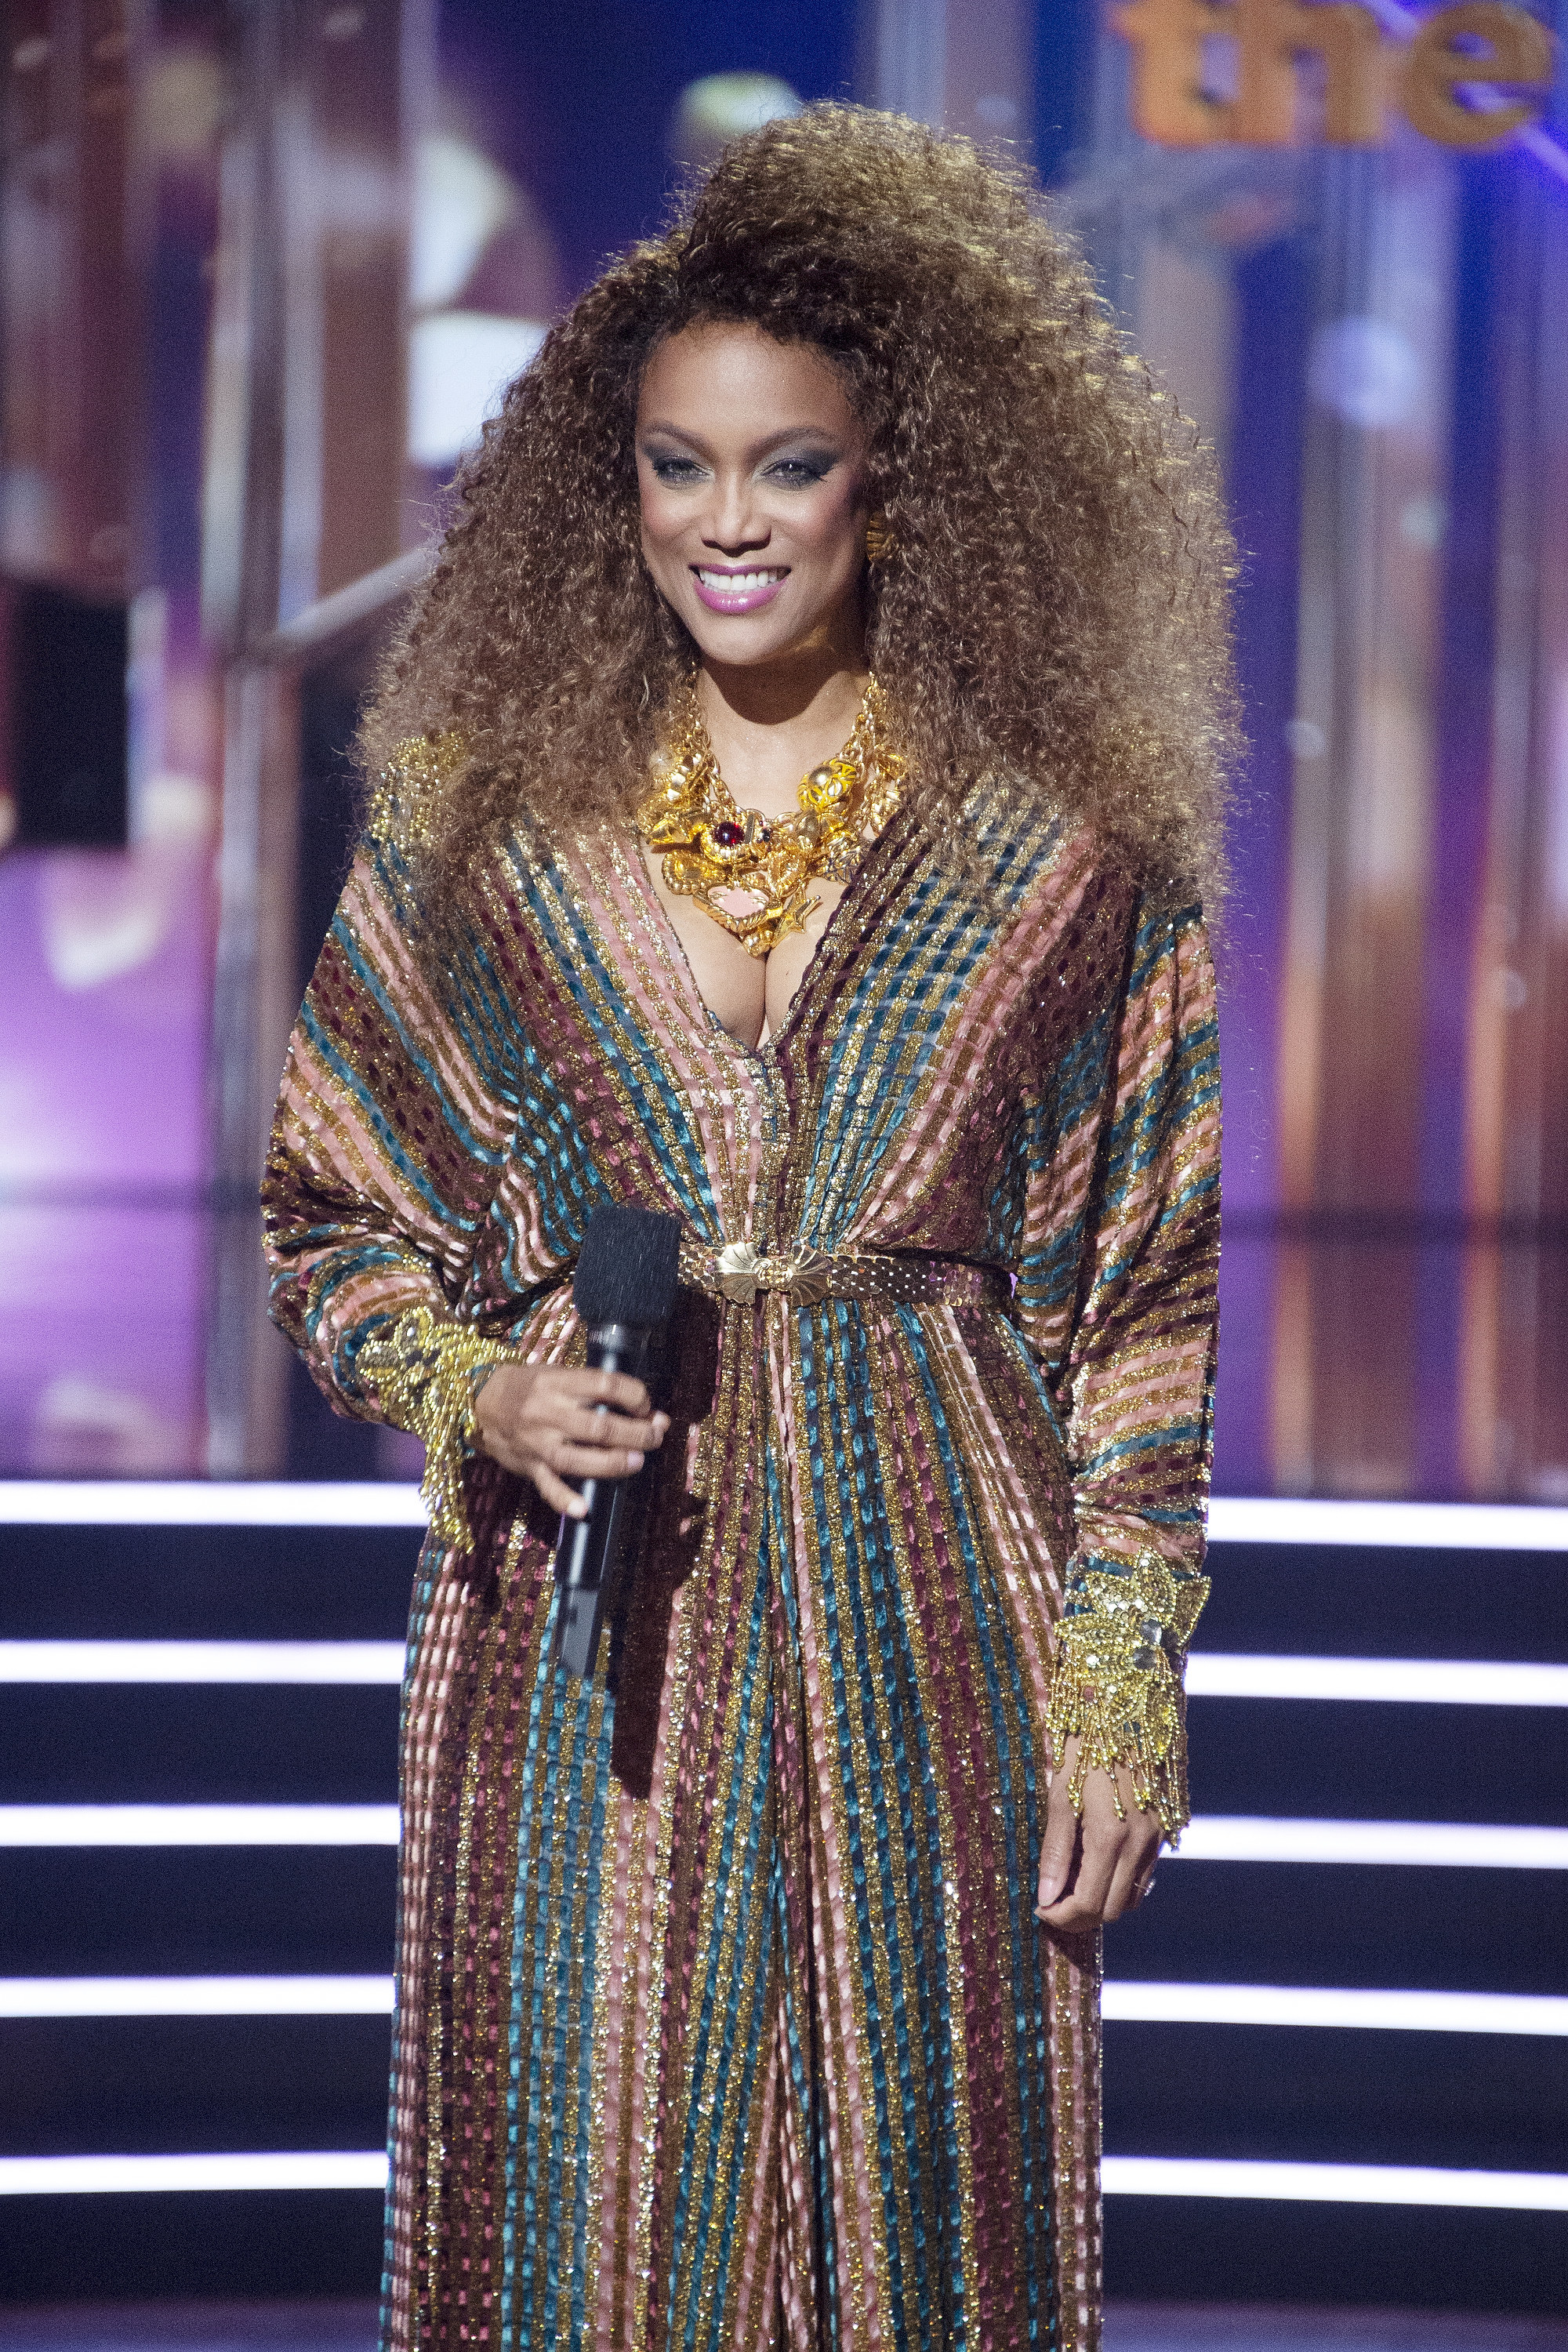 Tyra on Dancing with the Stars